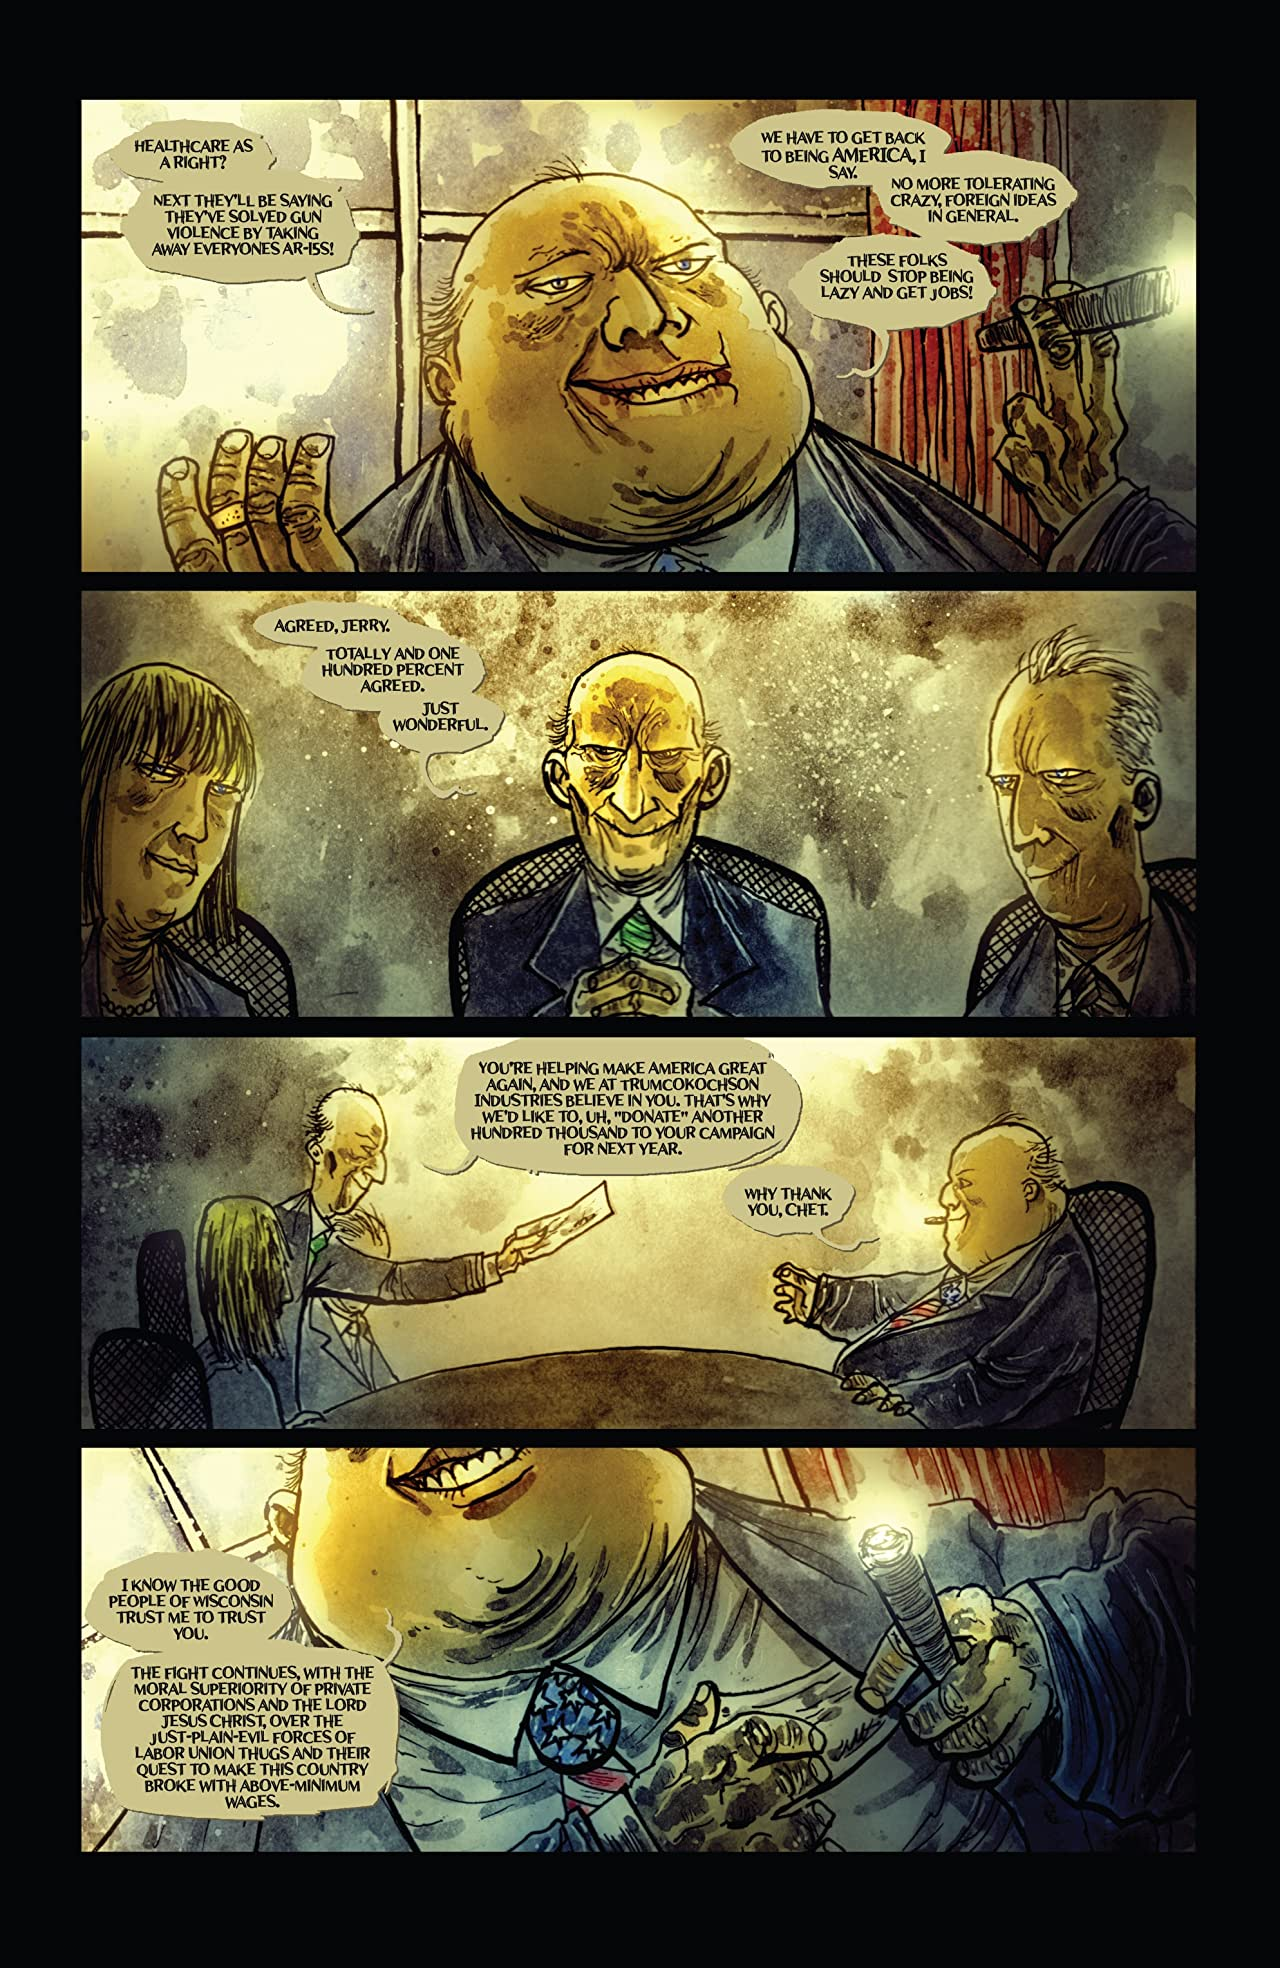 Wormwood, Gentleman Corpse: Mr. Wormwood Goes to Washington #1 (of 3)